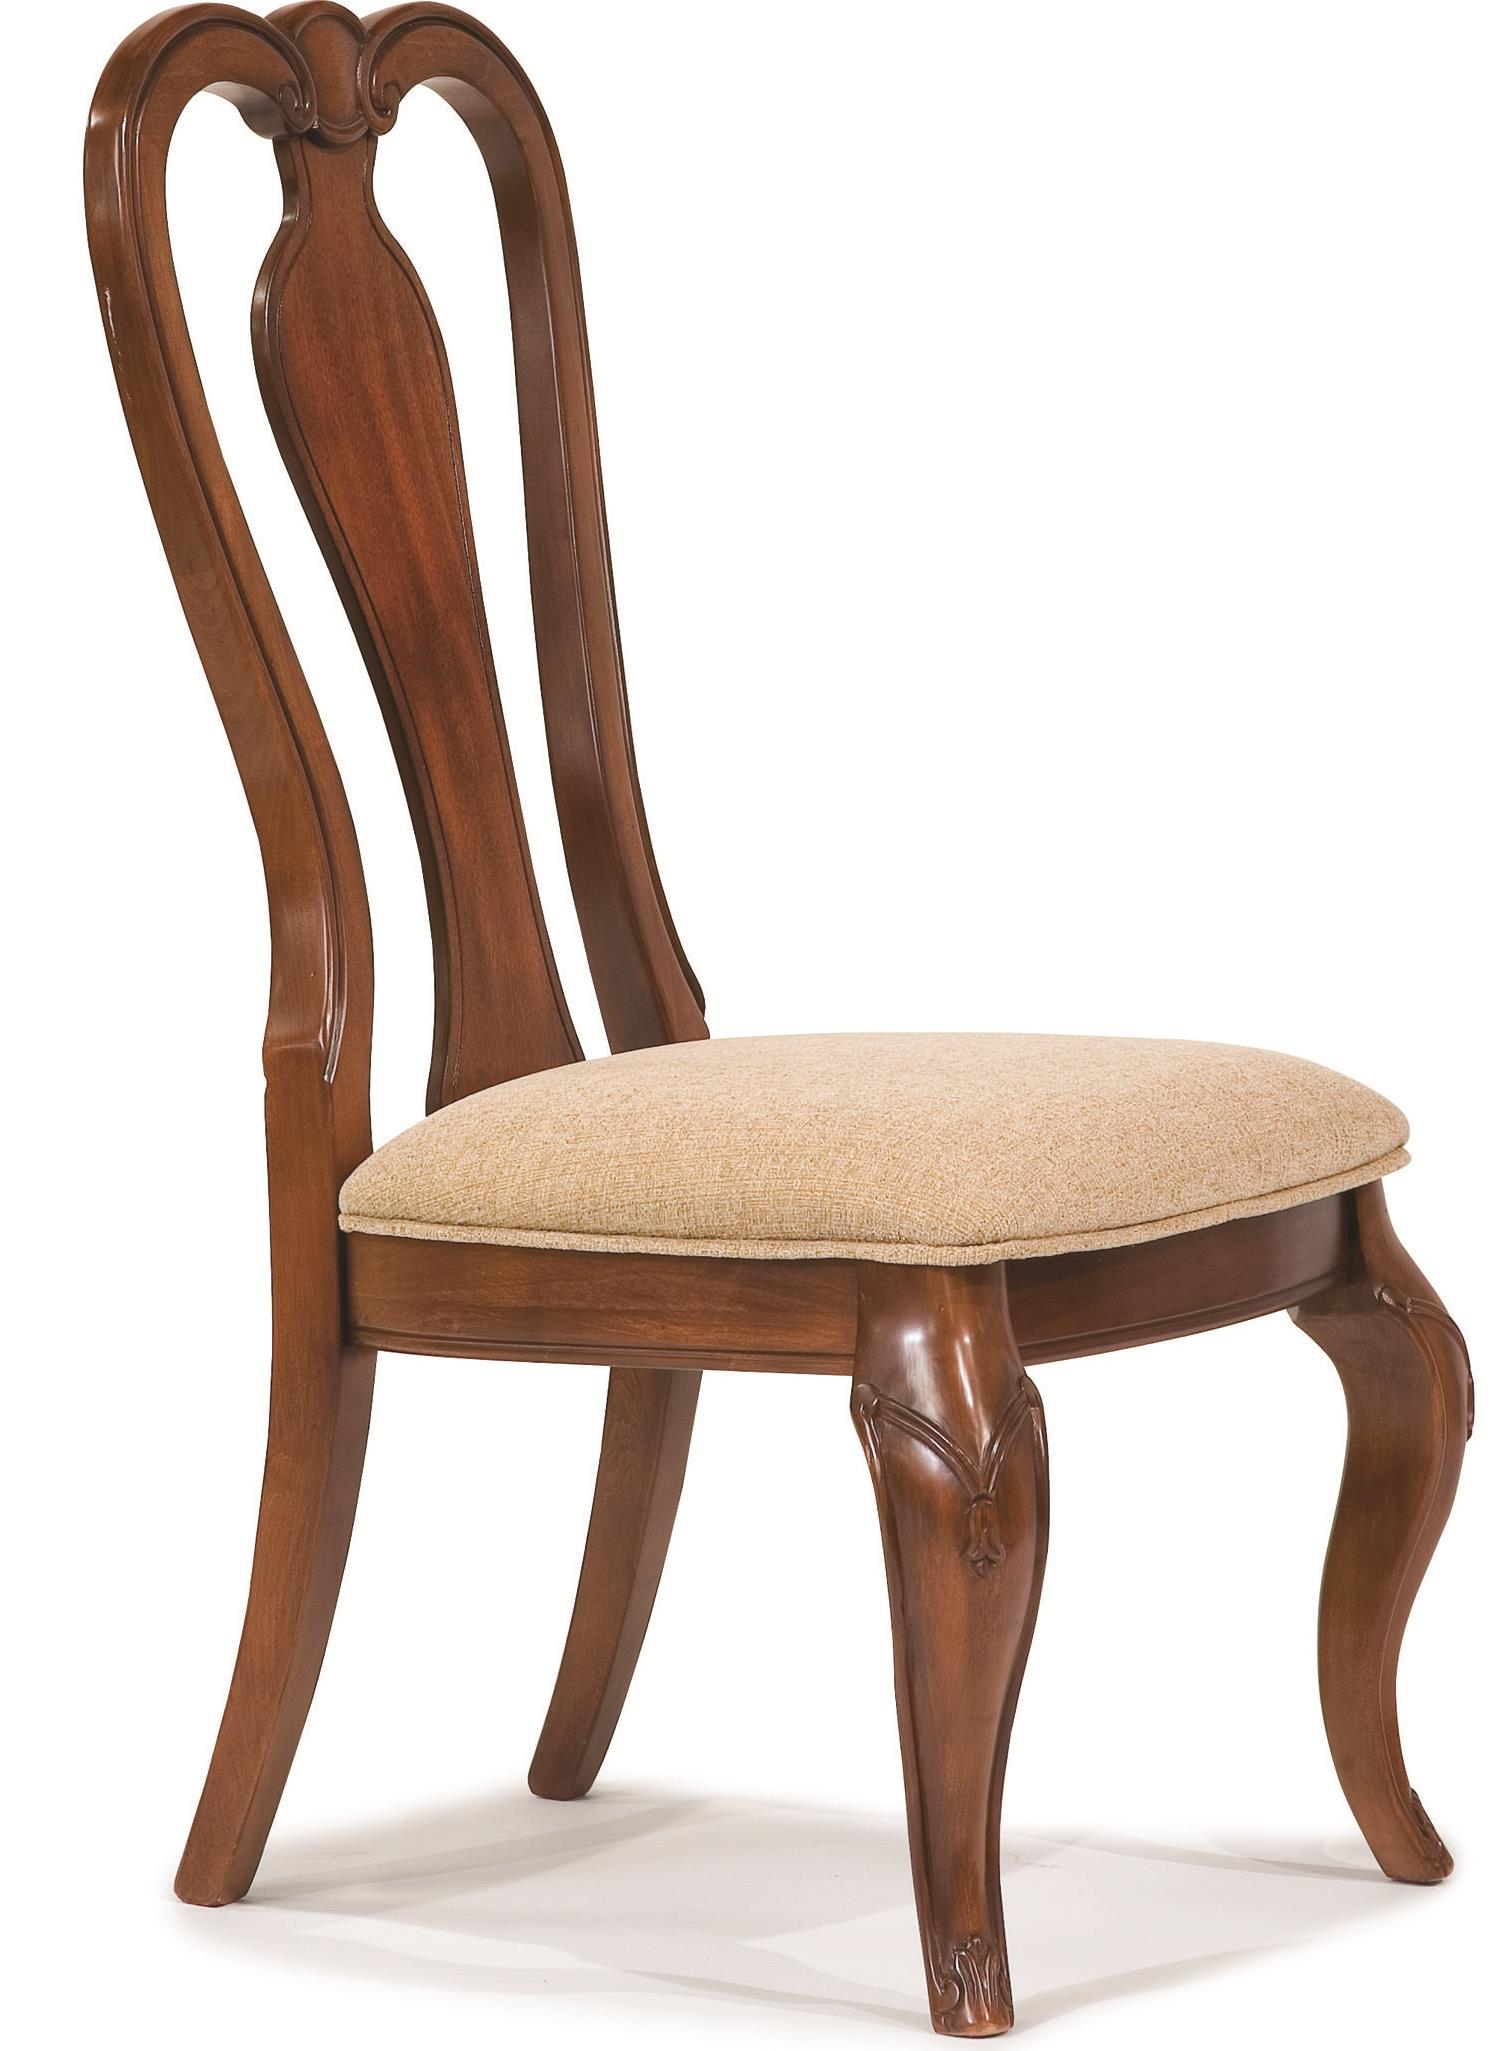 Queen Chairs Evolution Queen Anne Side Chair With Upholstered Seat By